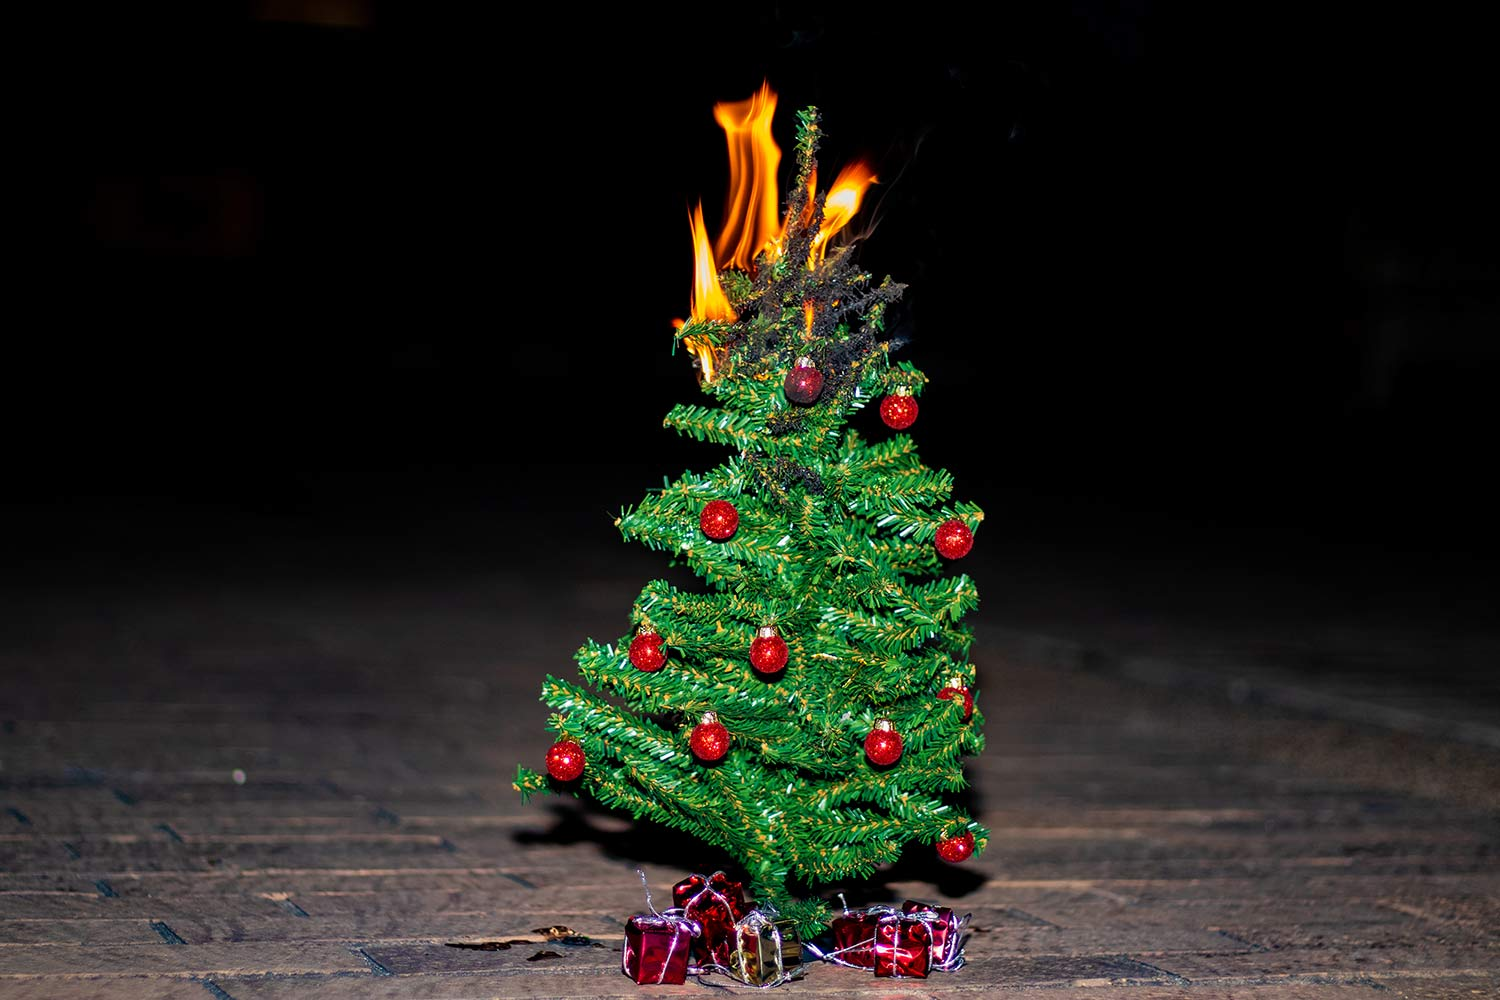 Photo Illustration. in recent years, Christmas has found its way into other months, obliterating other holidays and their meanings. The season must be pushed back to allow other holidays the deserved focus.